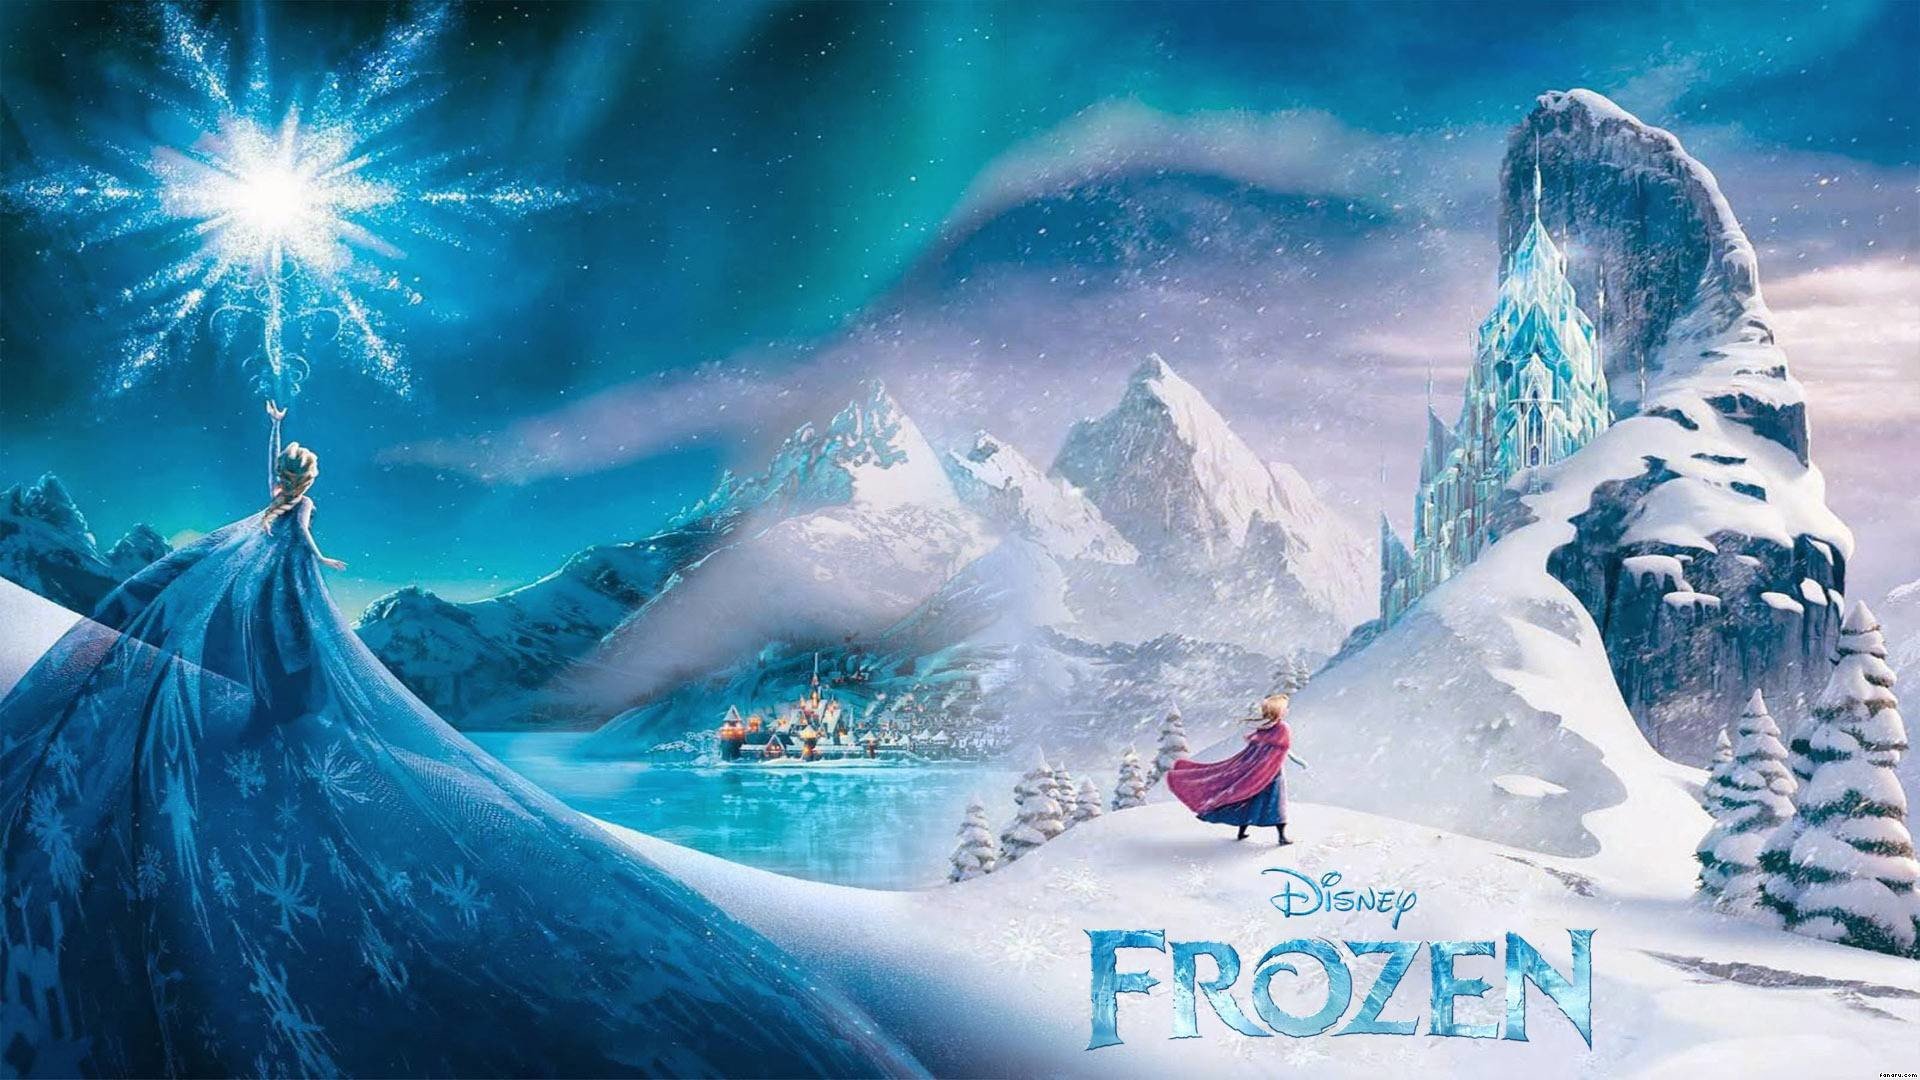 Res: 1920x1080, Wallpapers Iphone 5 Disney Frozen Wallpaper #7776